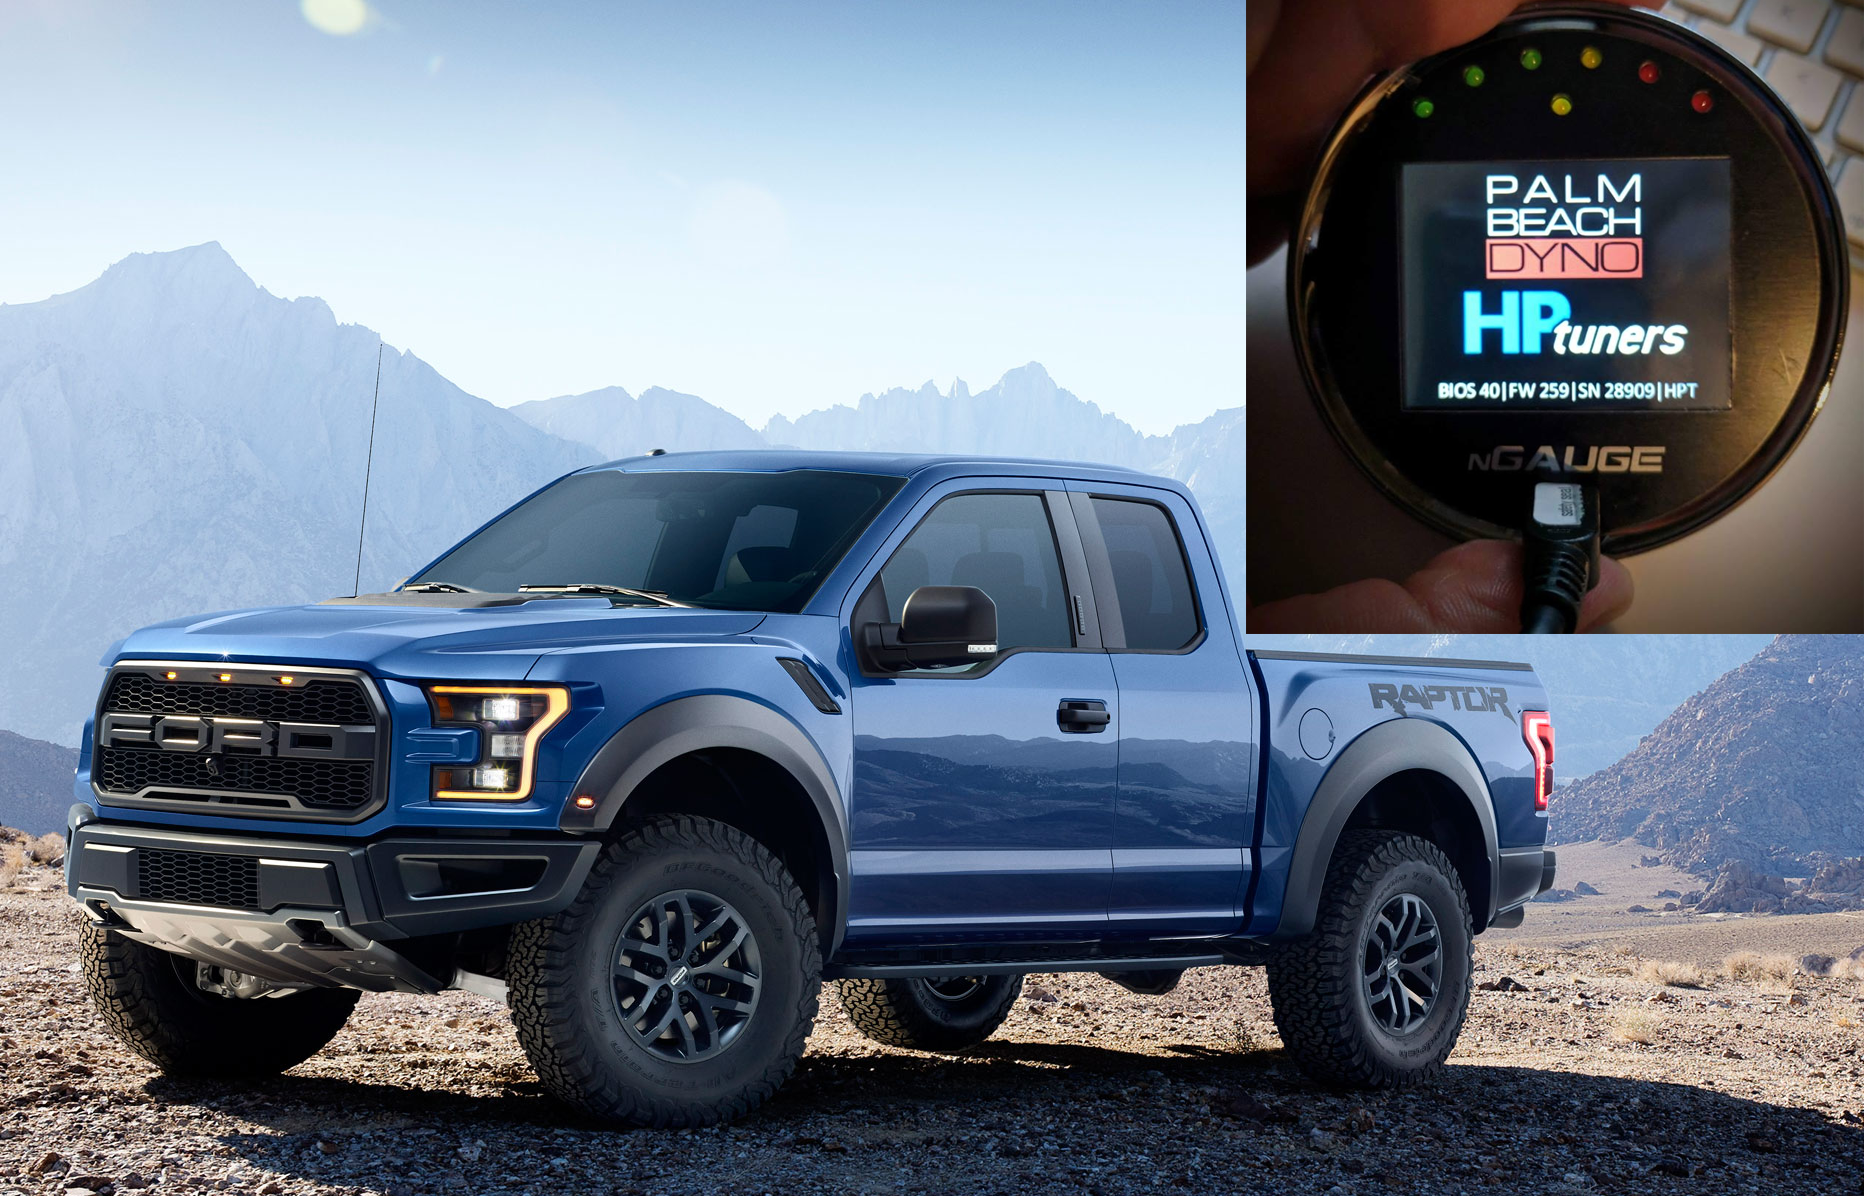 2017 2018 Ford Raptor Custom Tuning For Hp Tuners Ngauge Tune Only